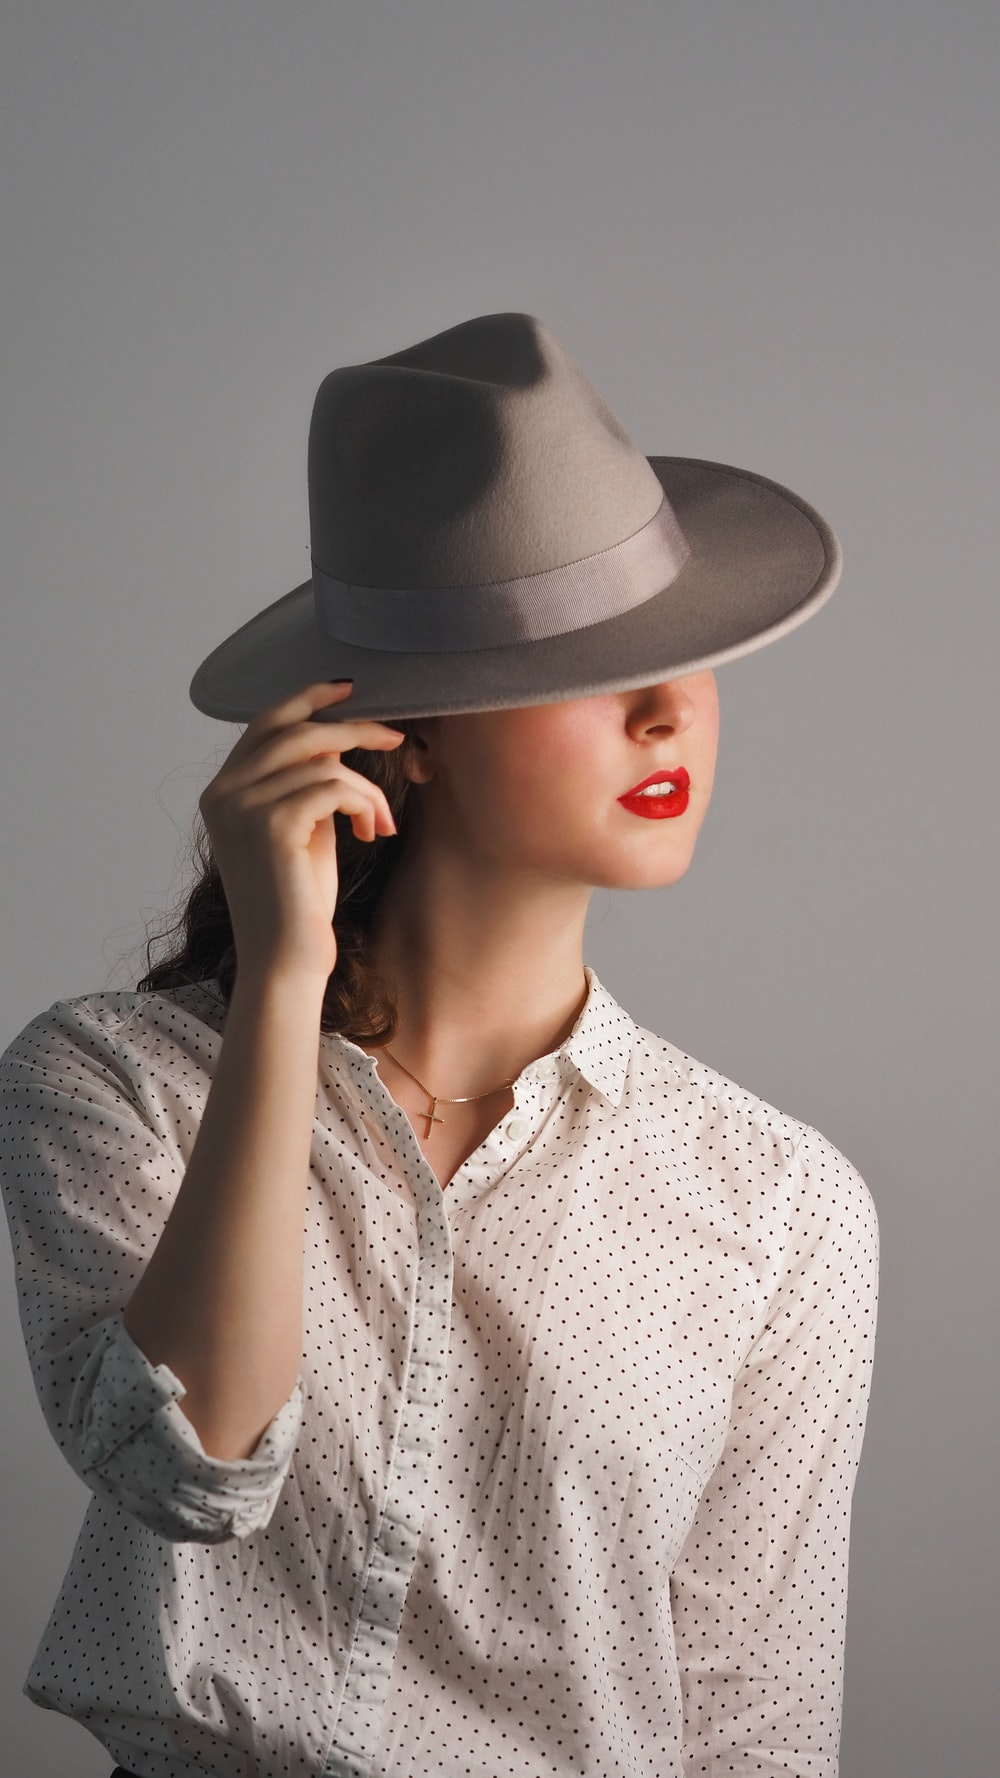 woman in gray hat and gray button up shirt